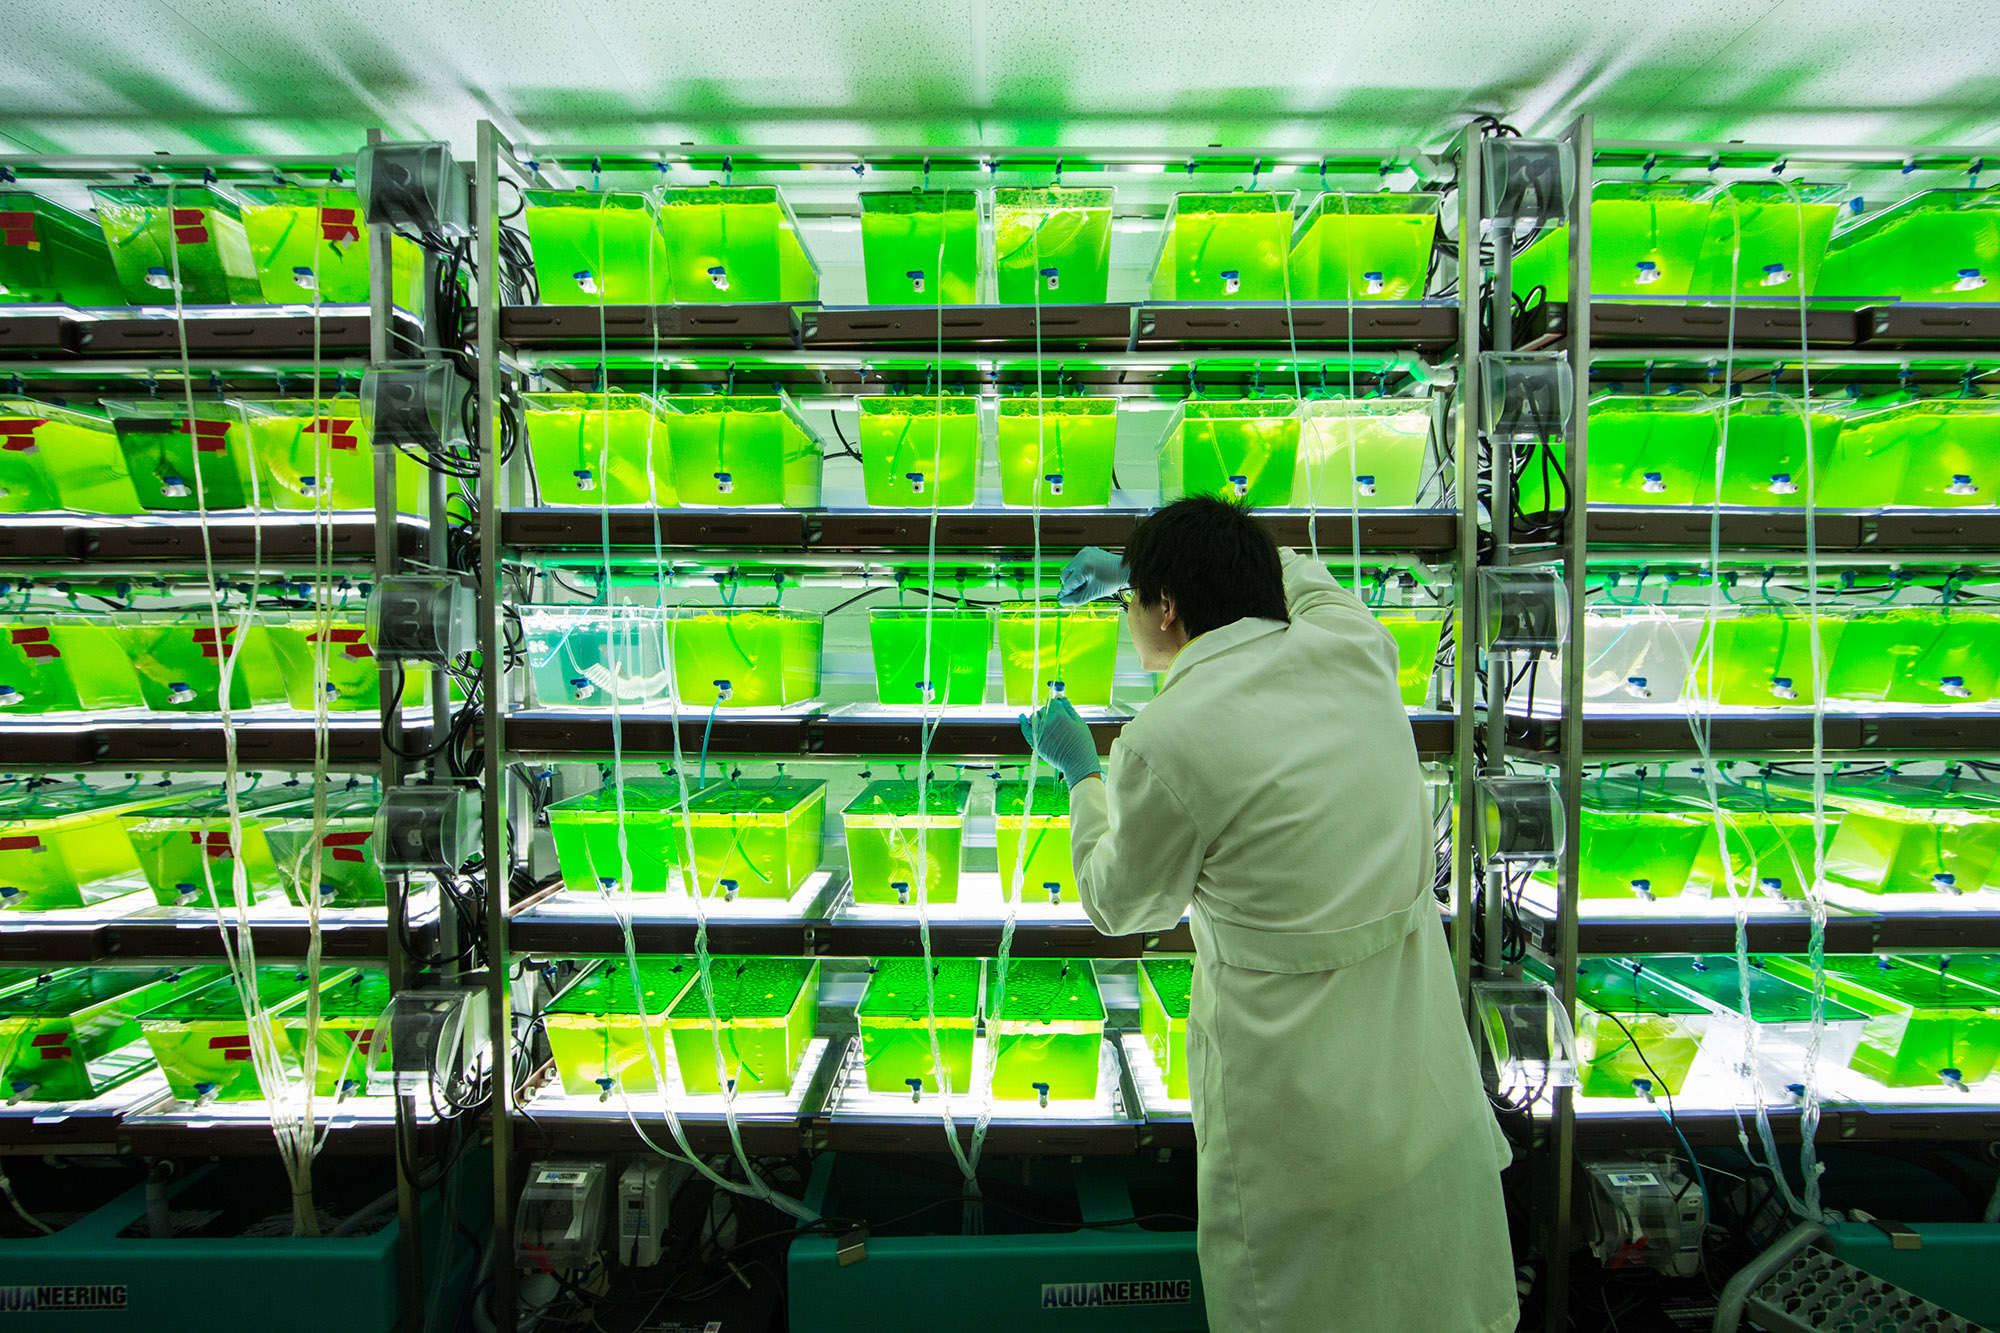 A University of Michigan undergraduate samples algae from an experiment that will determine if species diversity can enhance the production of algal biofuels. Image credit: Bradley J. Cardinale